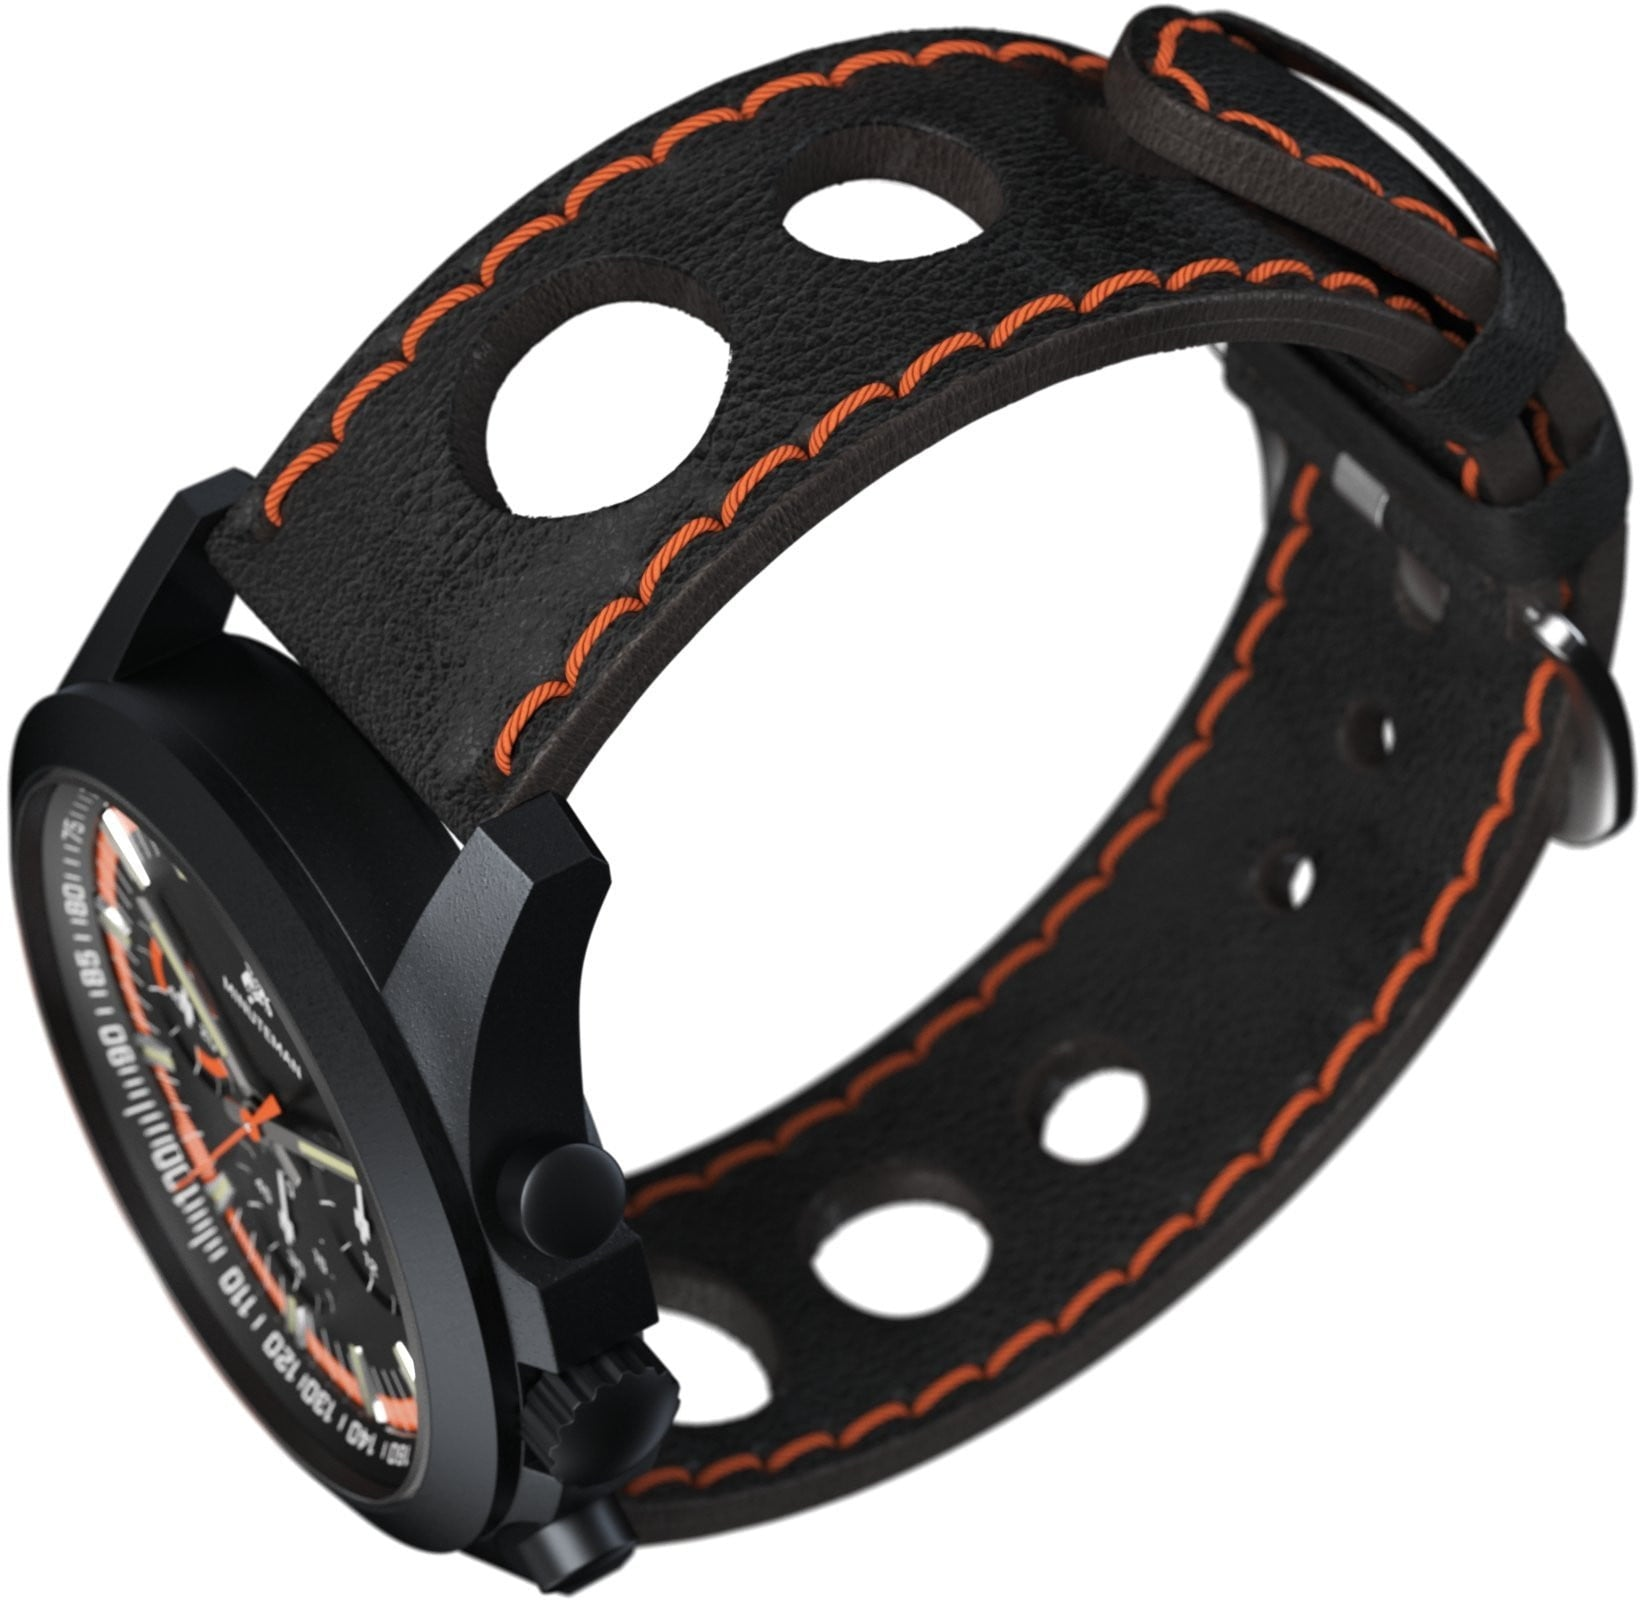 Minuteman Parker Chronograph Watch Black Leather Strap DLC  Black/Orange Dial,minutemanwatches,Minuteman,Wrist Watch